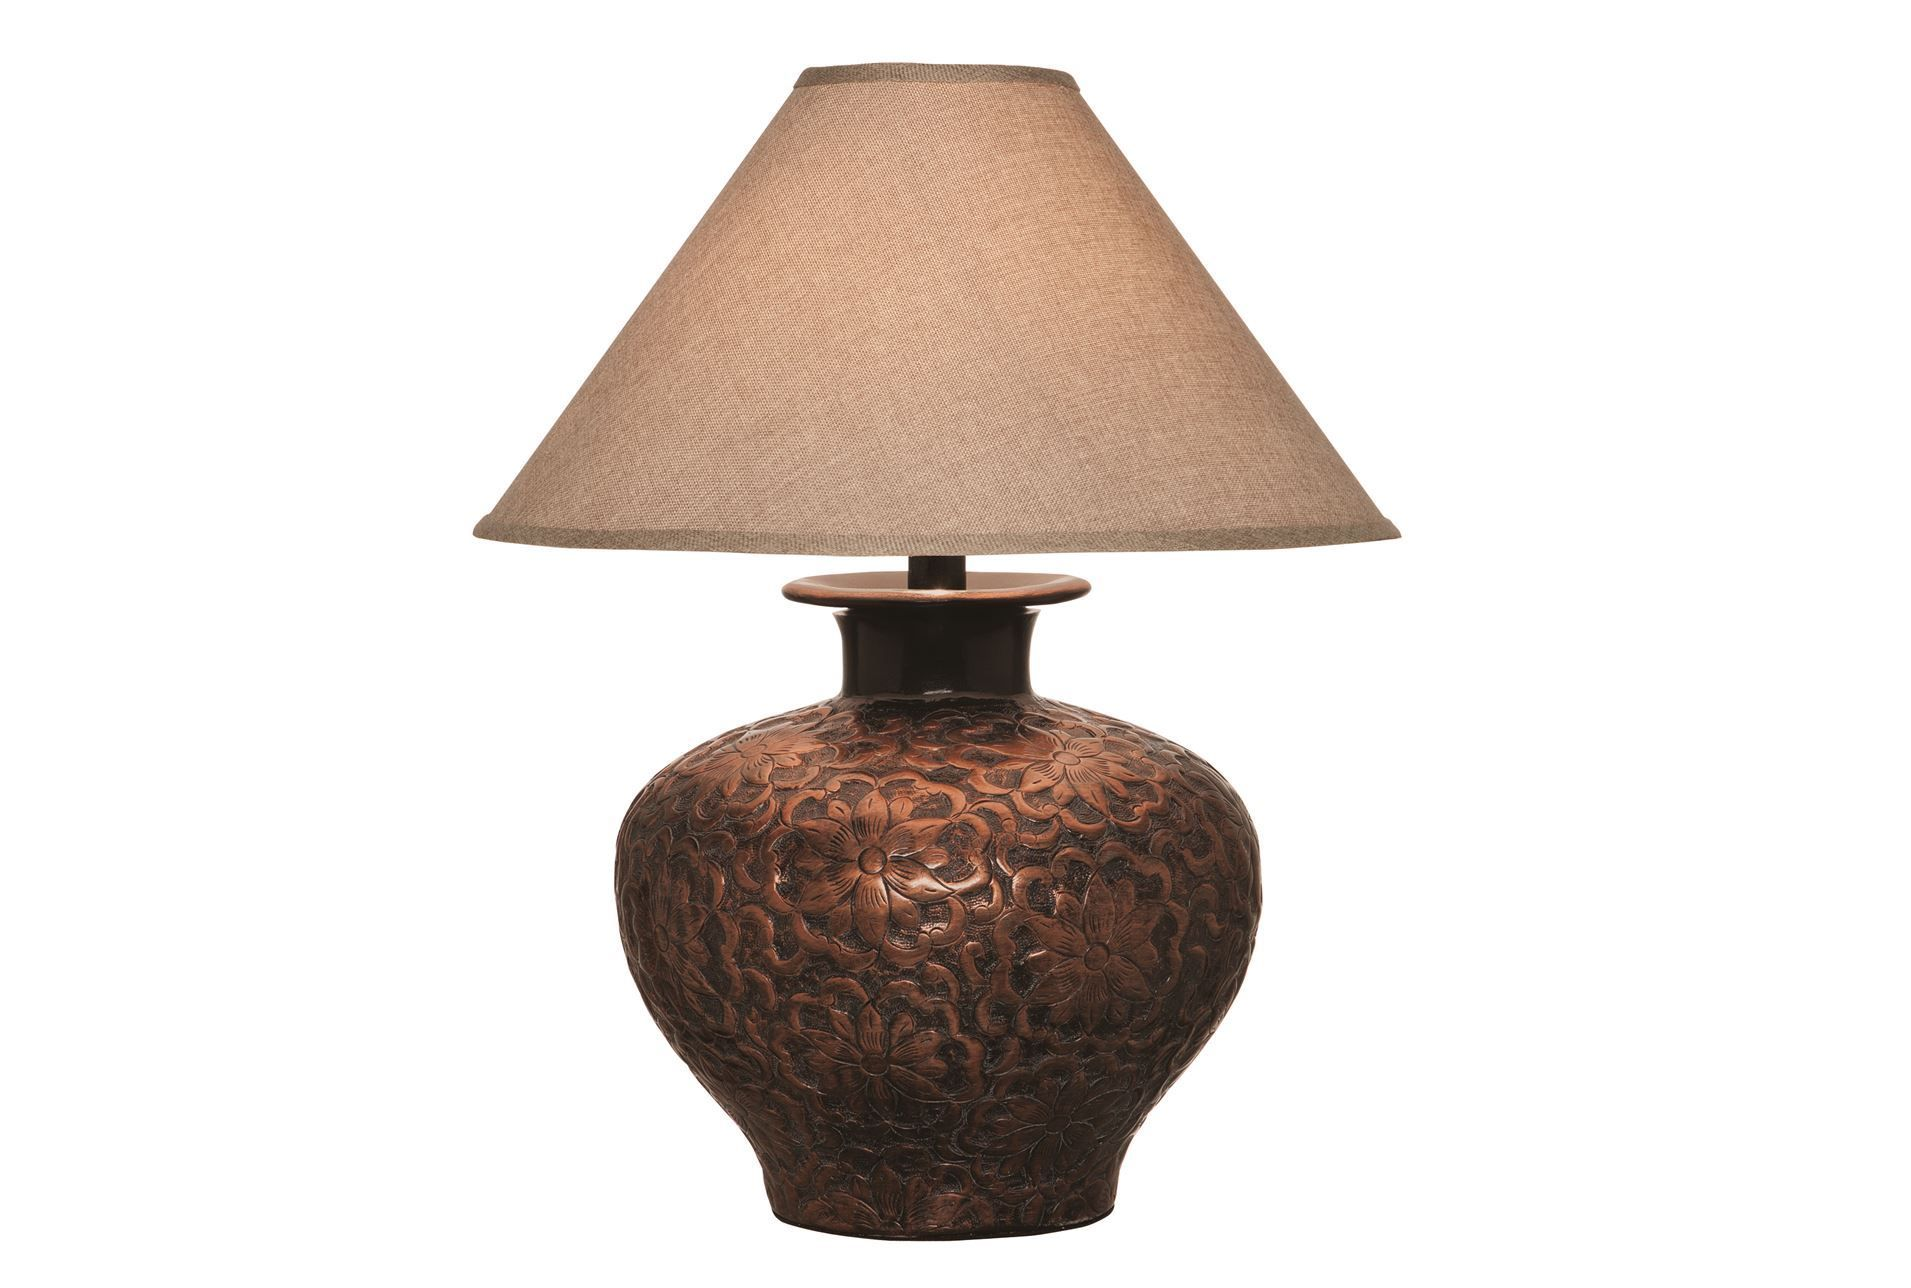 Table Lamp Hammered Copper Living Spaces Silver Table Lamps Traditional Table Lamps Copper Table Lamp